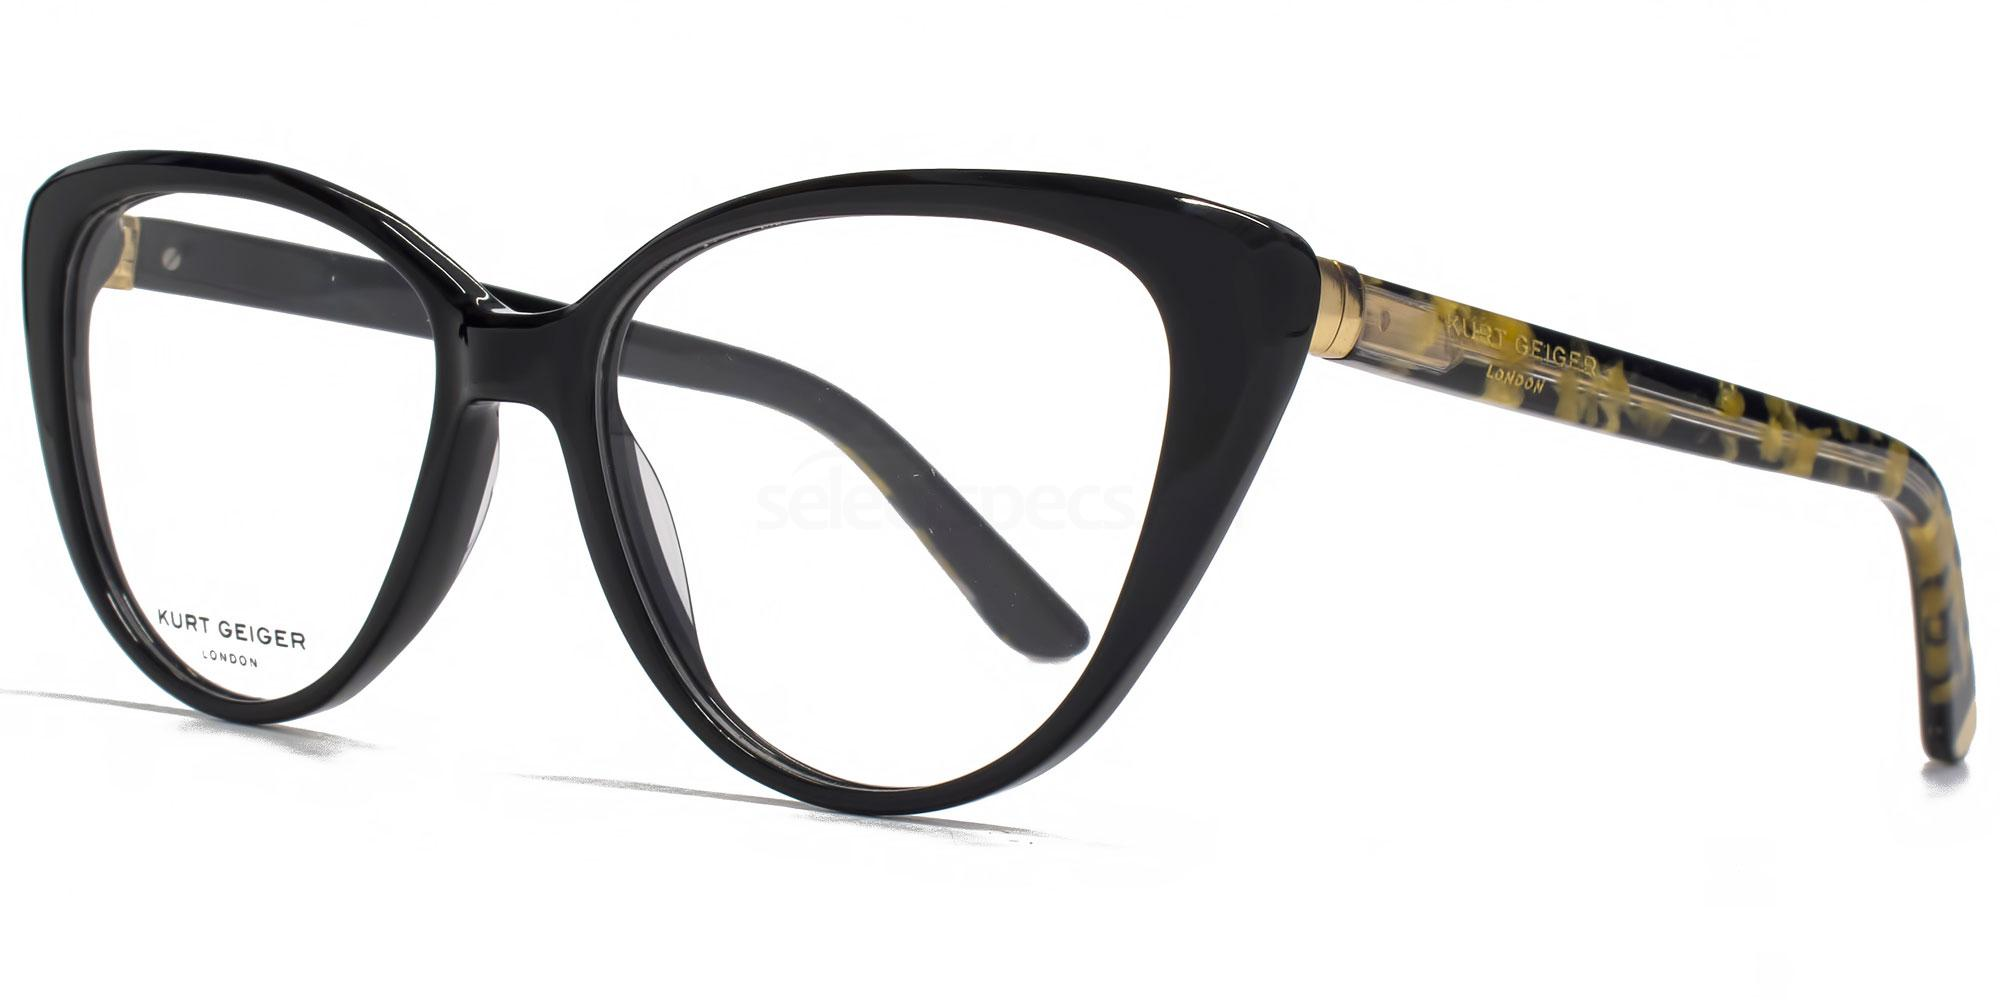 BLK KGS014 - LIBBY Glasses, Kurt Geiger London